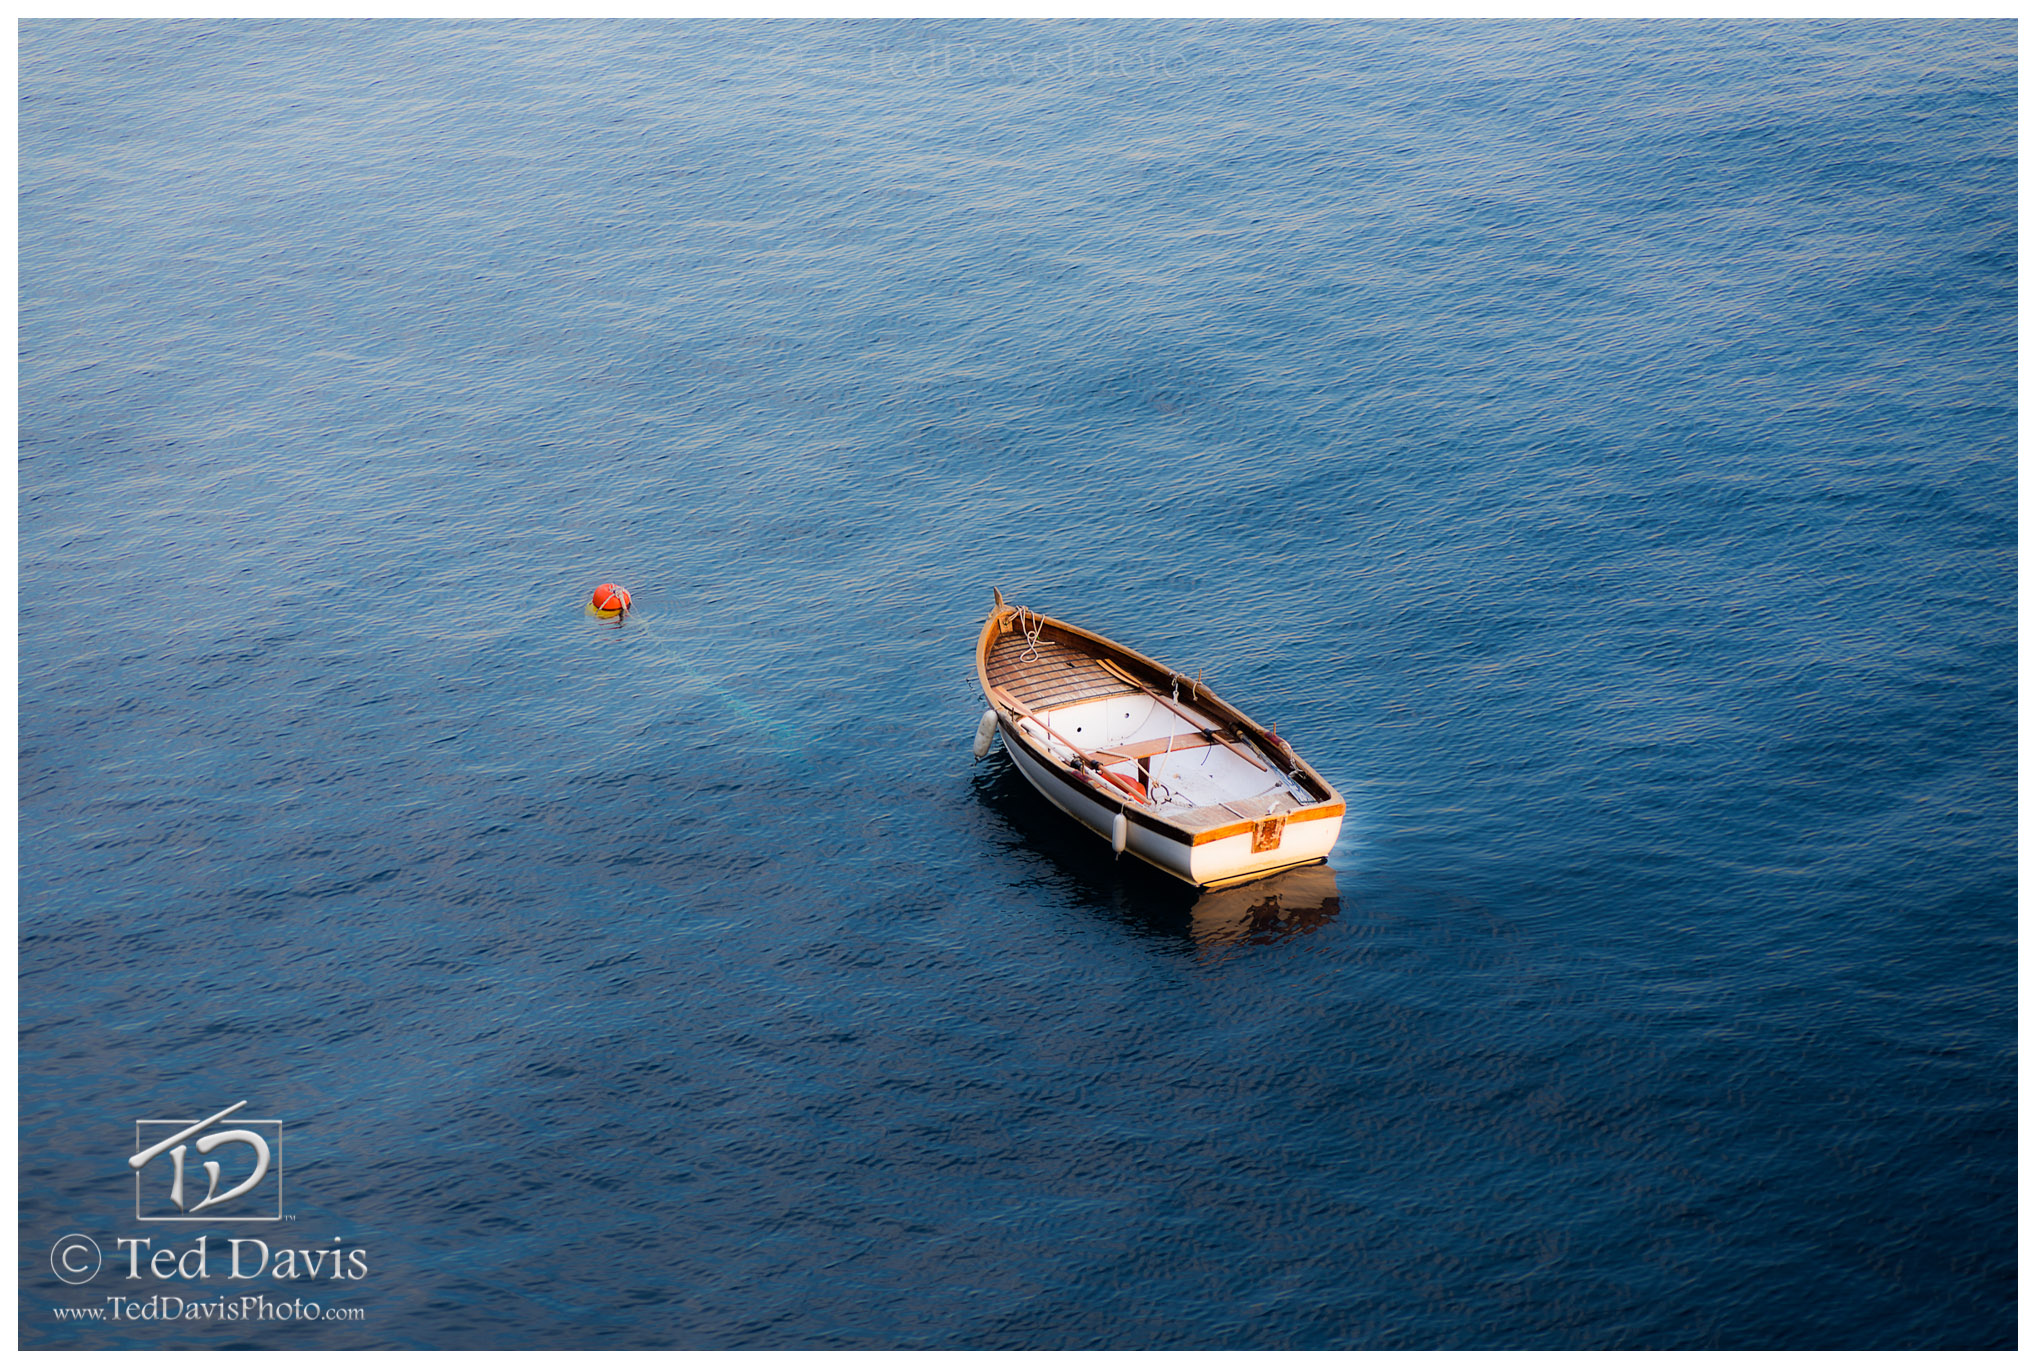 Limited Edition of 100 A dinghy rolled in the calm swells of the Mediterranean. On a cliff above the harbor, I was relaxing with...